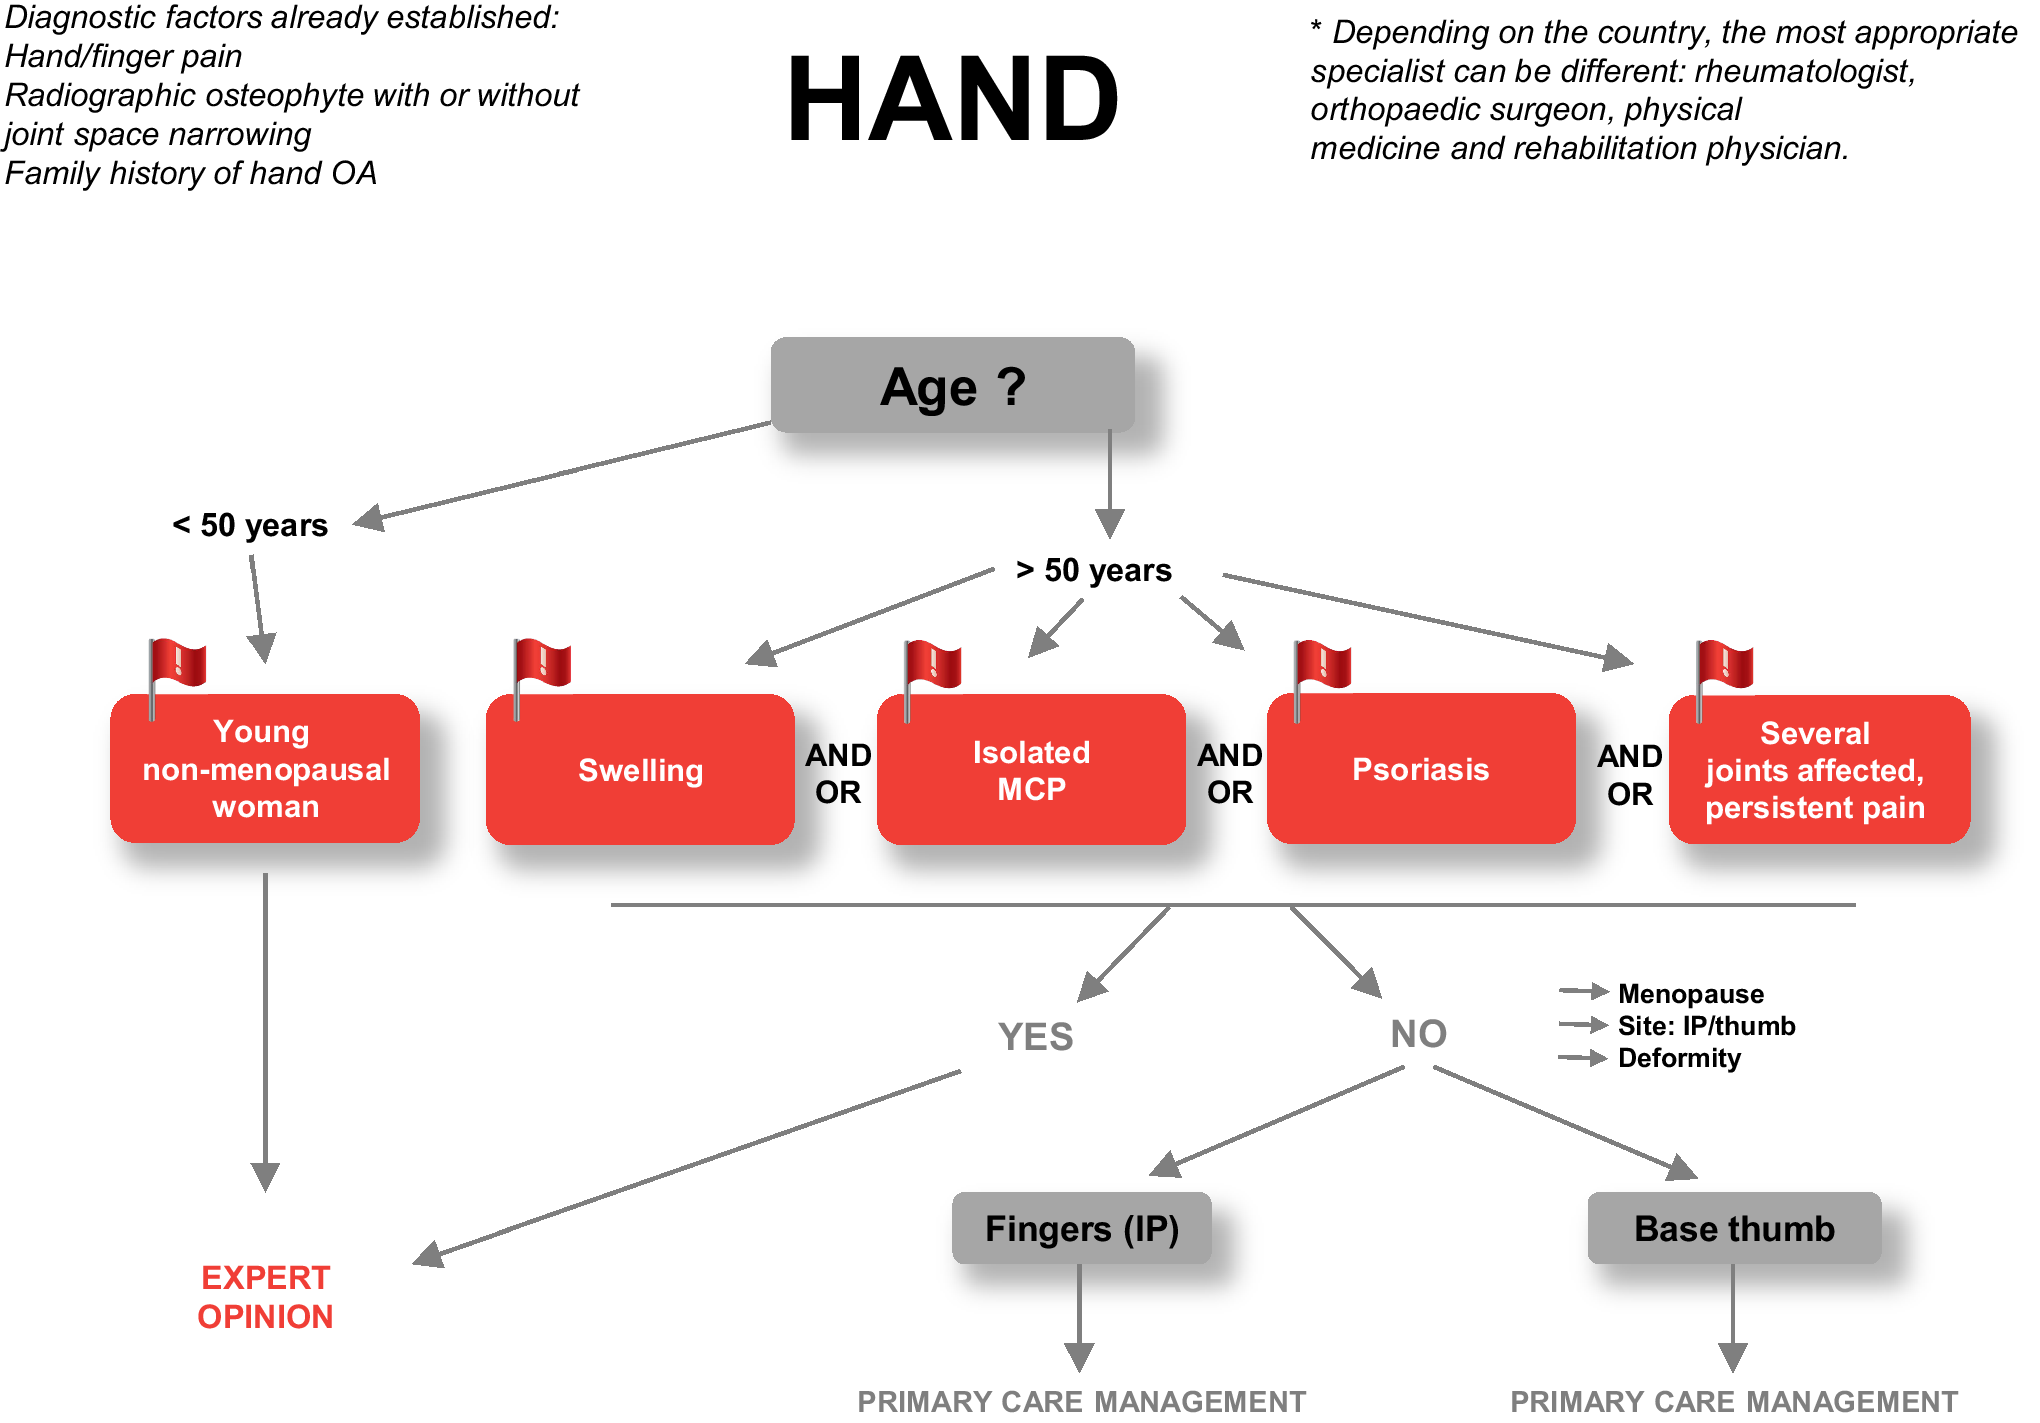 A new decision tree for diagnosis of osteoarthritis in primary care